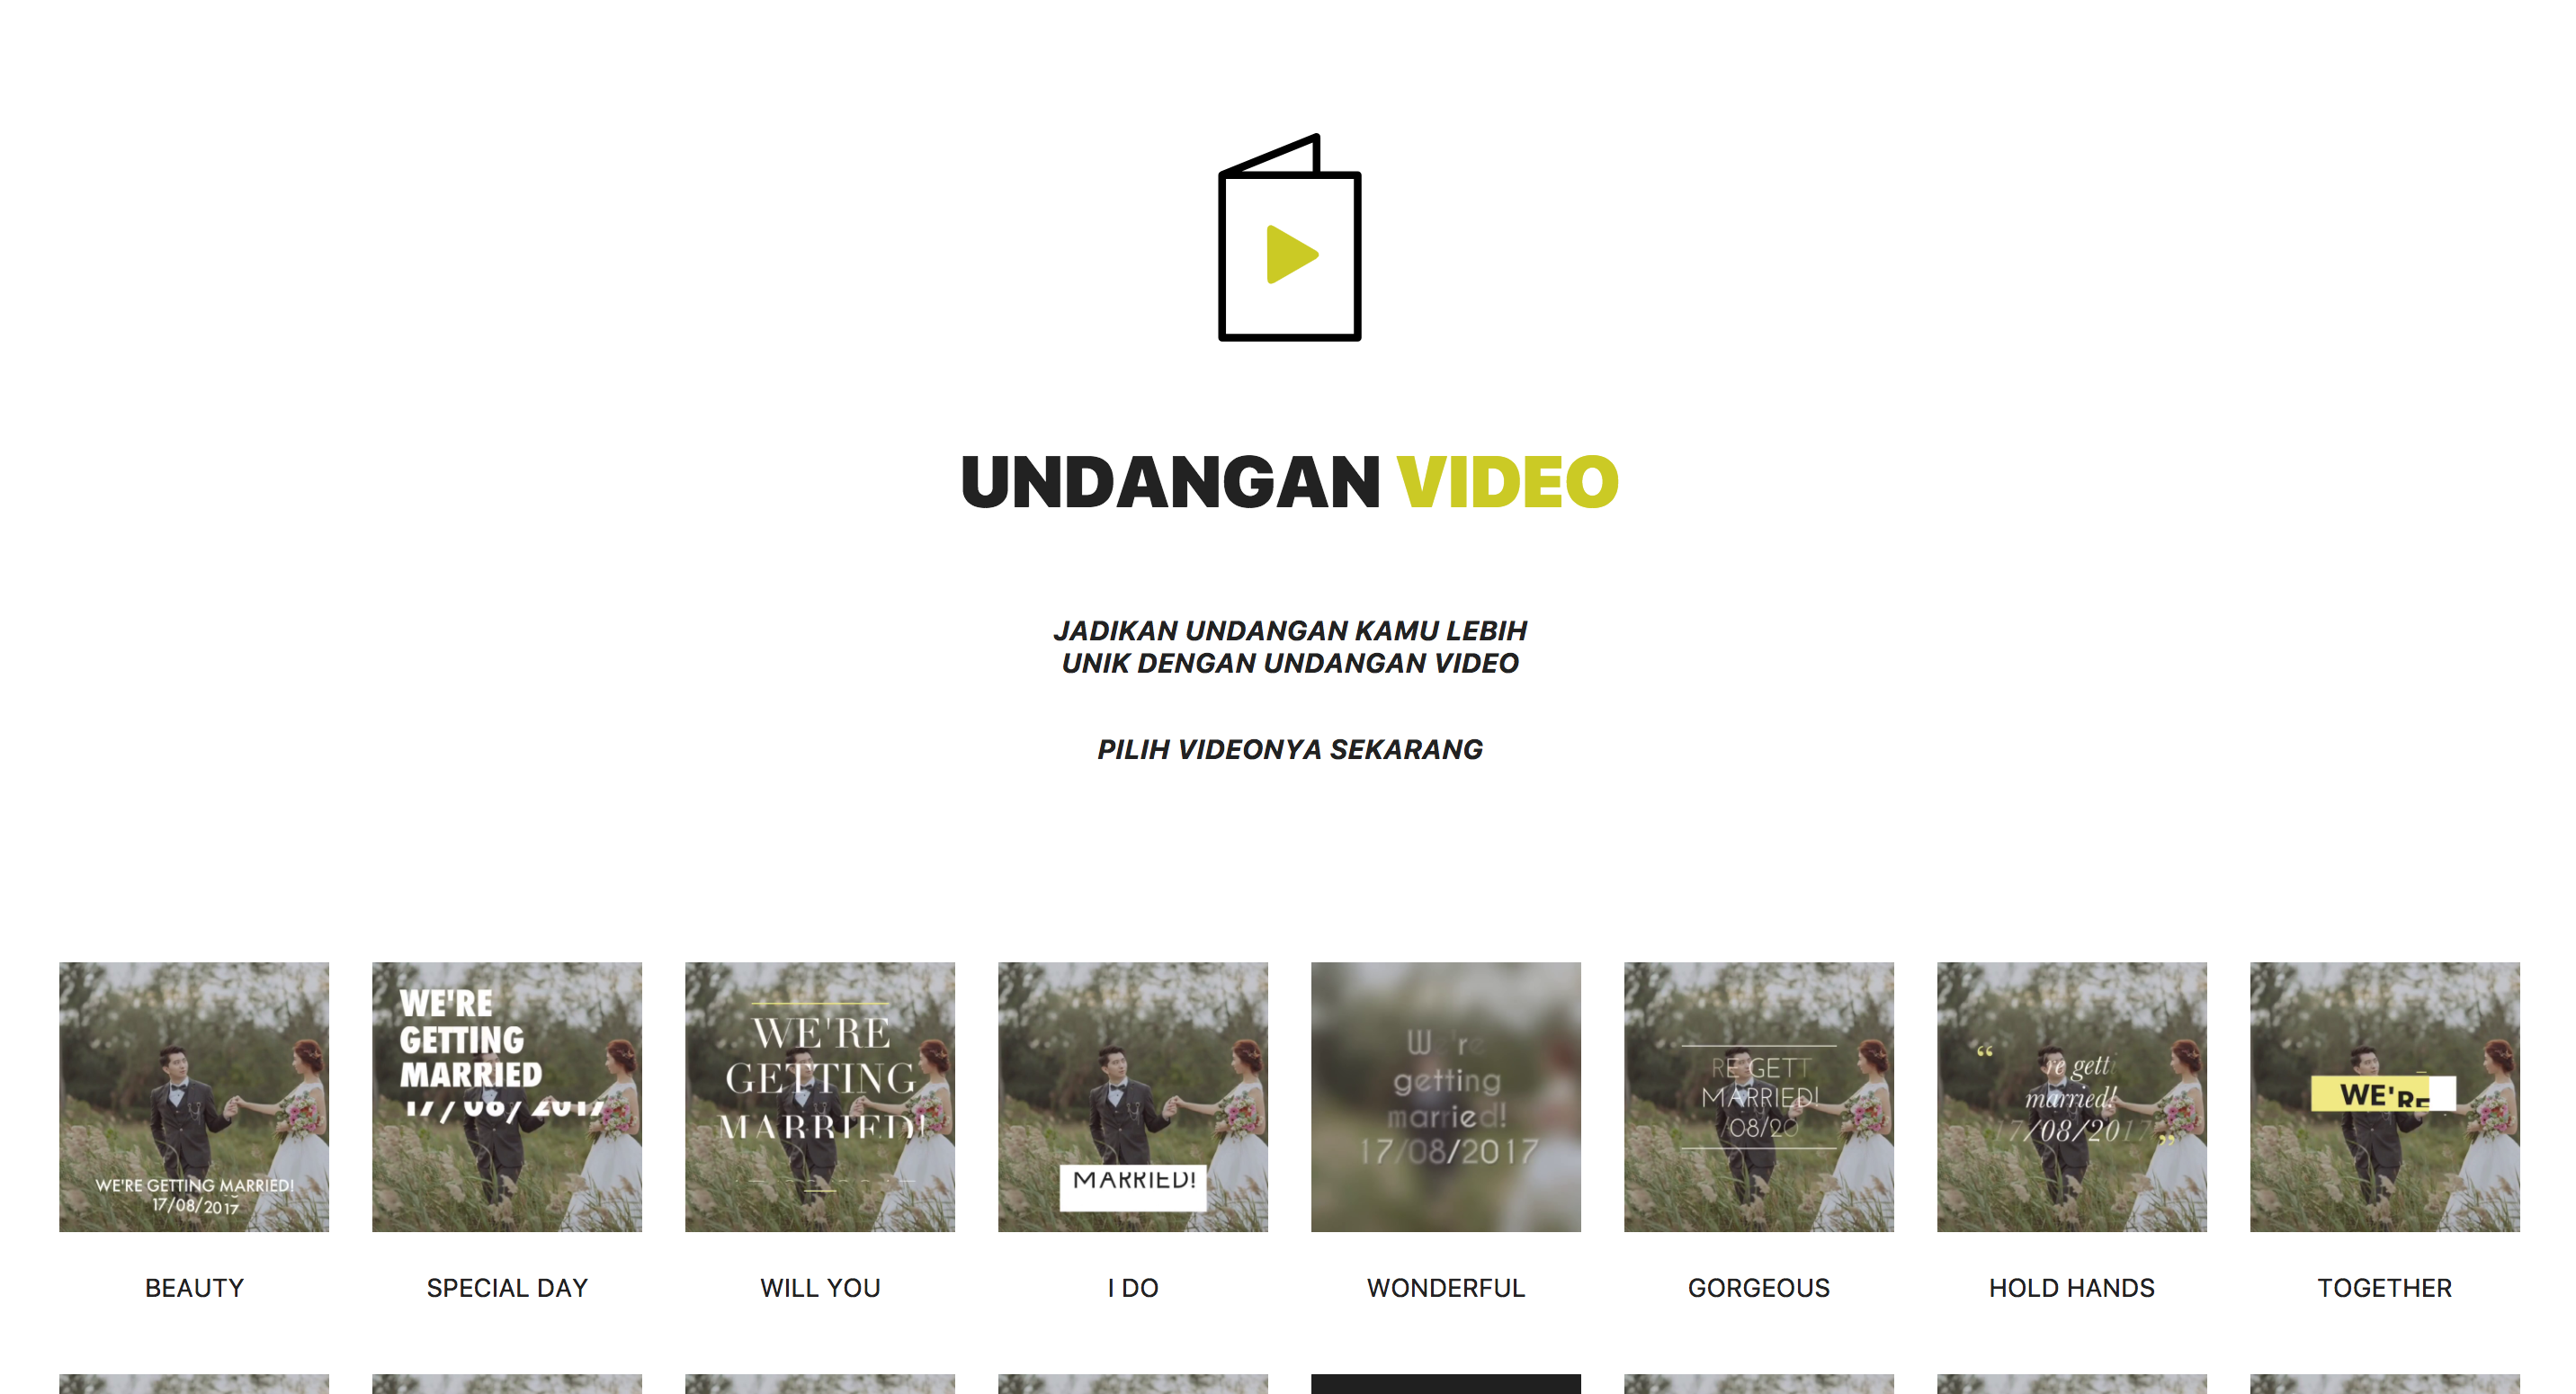 Video Undangan Pernikahan Online